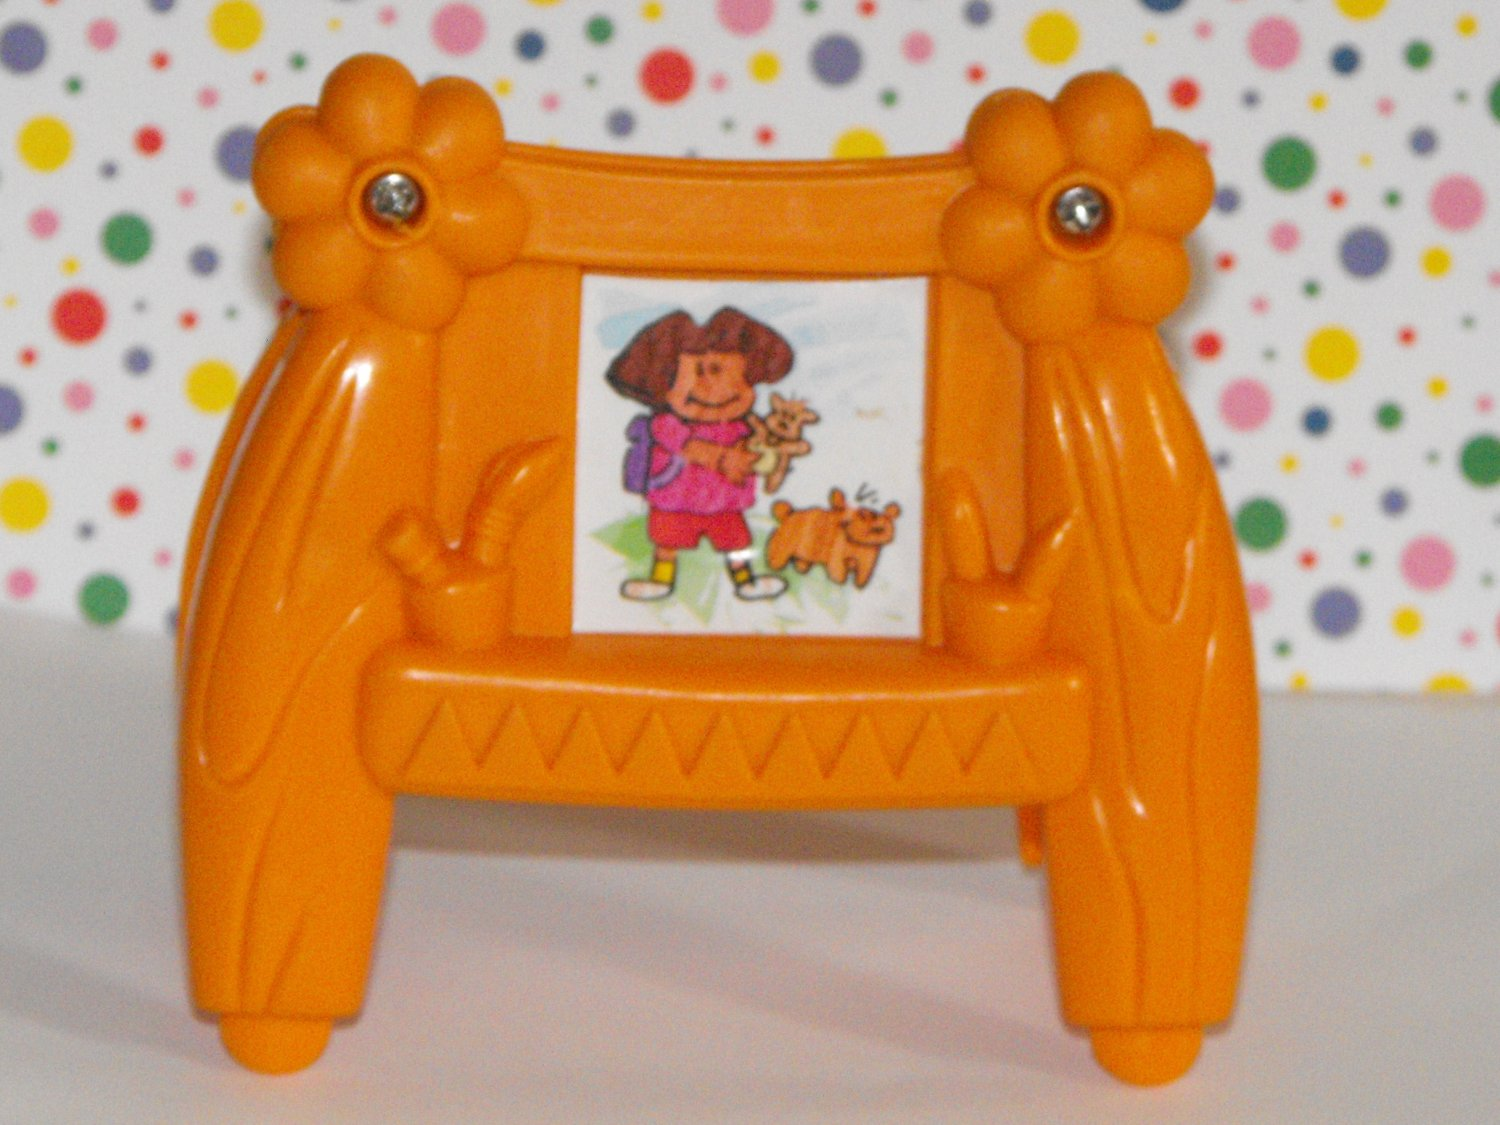 DORA THE EXPLORER TWINS DOLLHOUSE ART EASEL PART